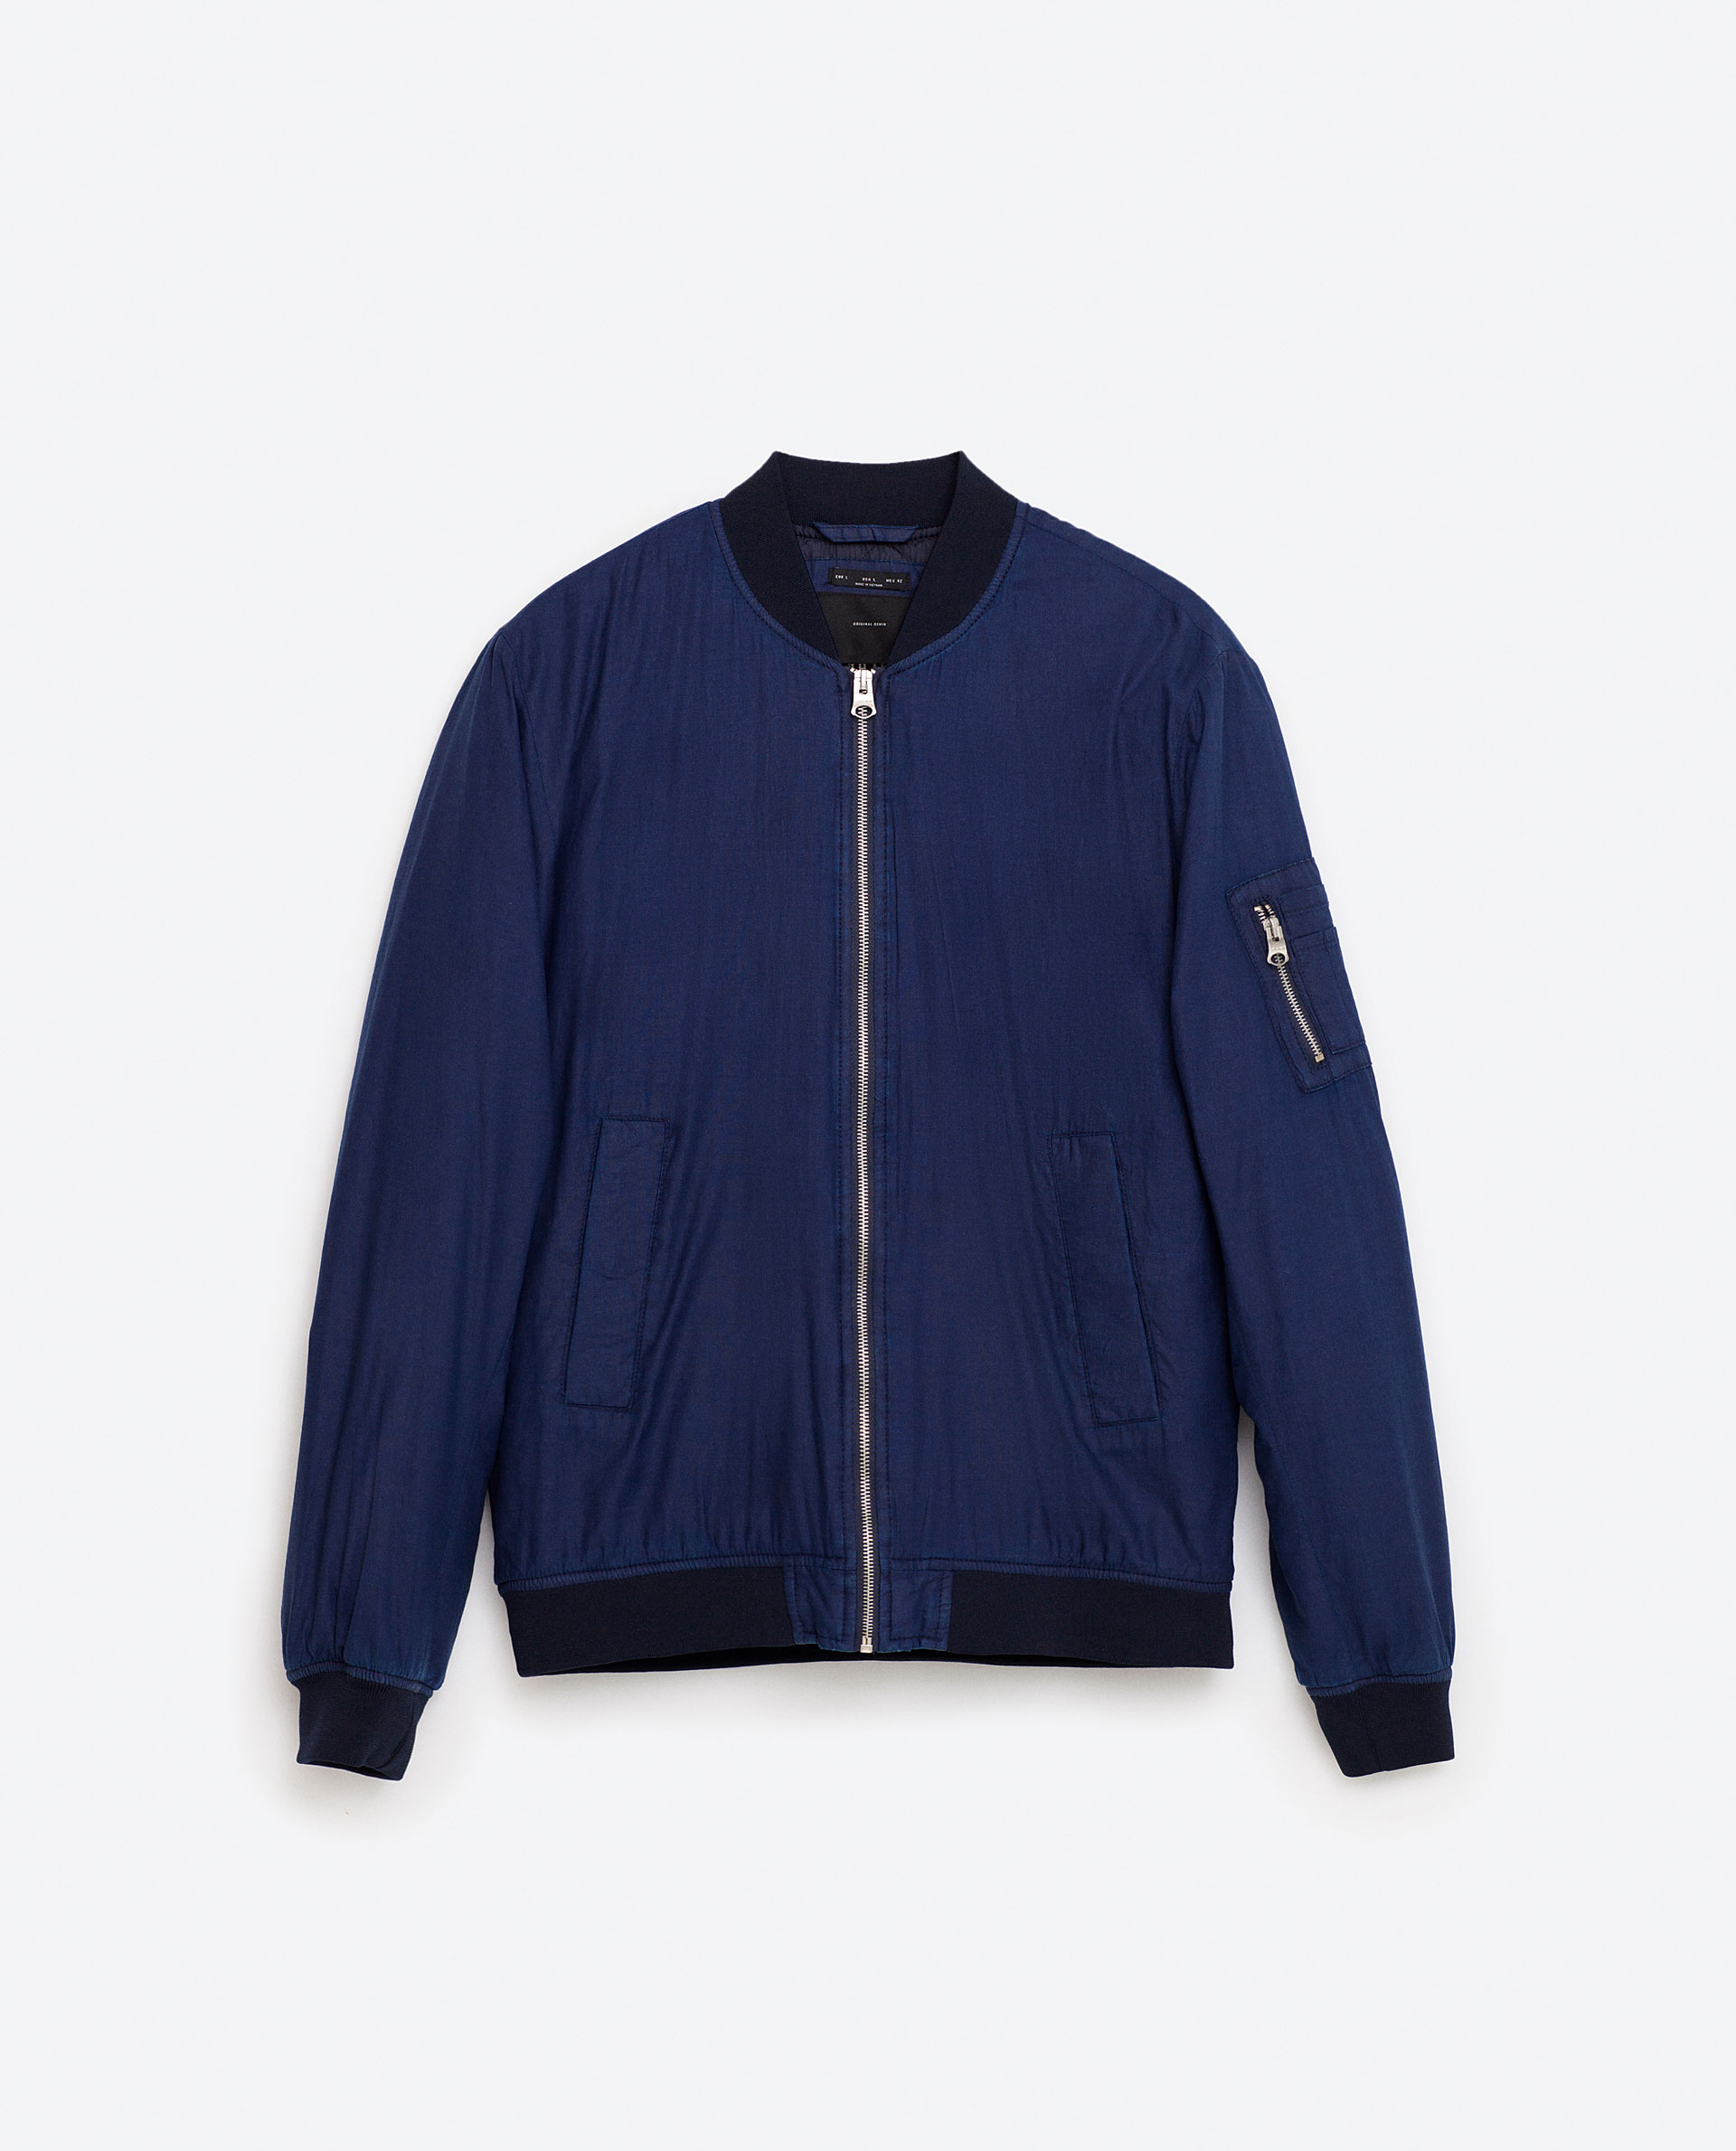 Quilted bomber jacket, £49.99 ( zara.com )